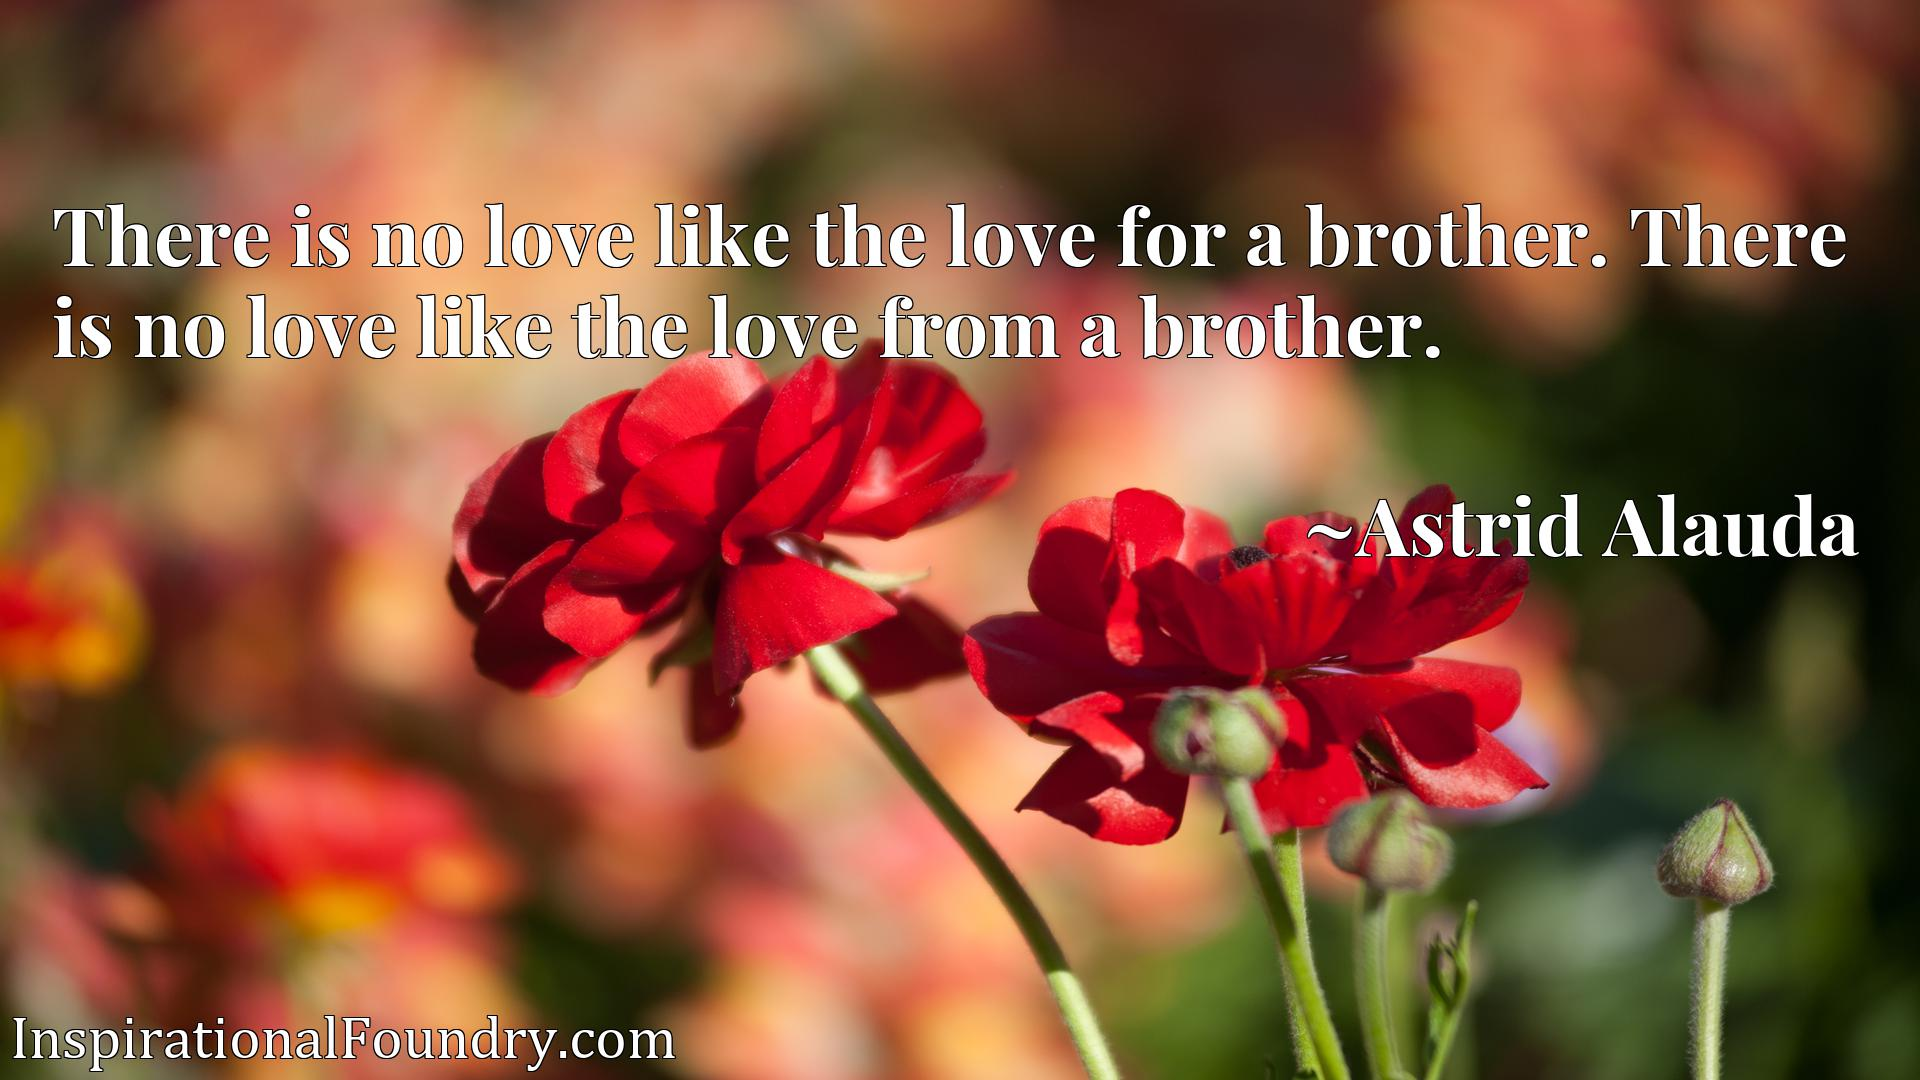 There is no love like the love for a brother. There is no love like the love from a brother.